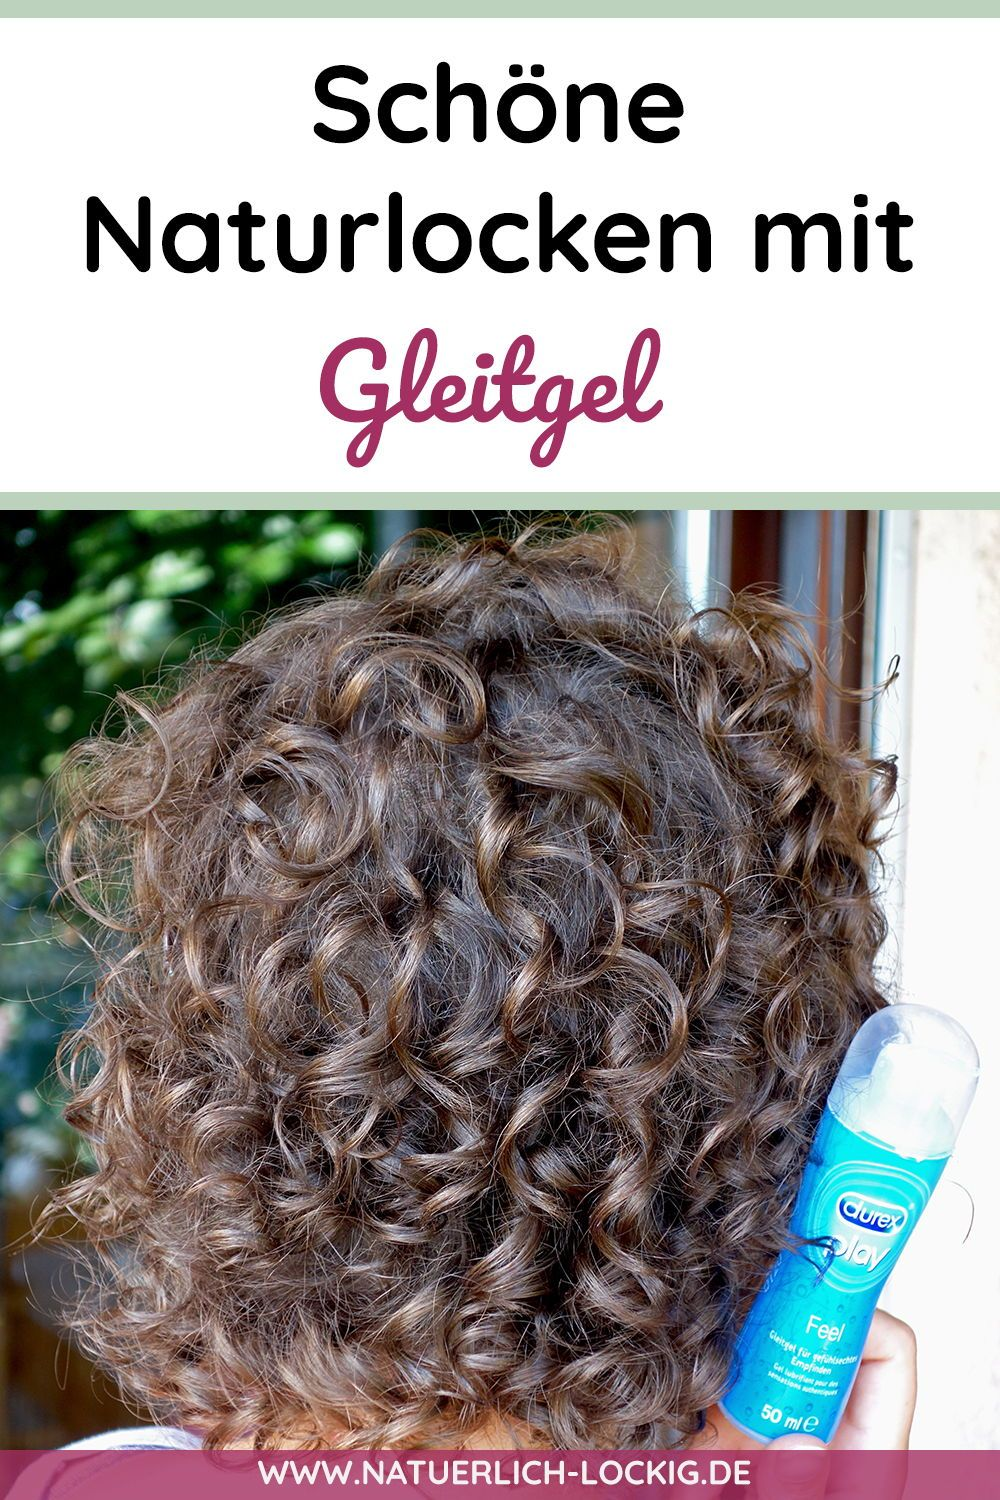 Defining and styling natural curls with lubricants? You'll be surprised.